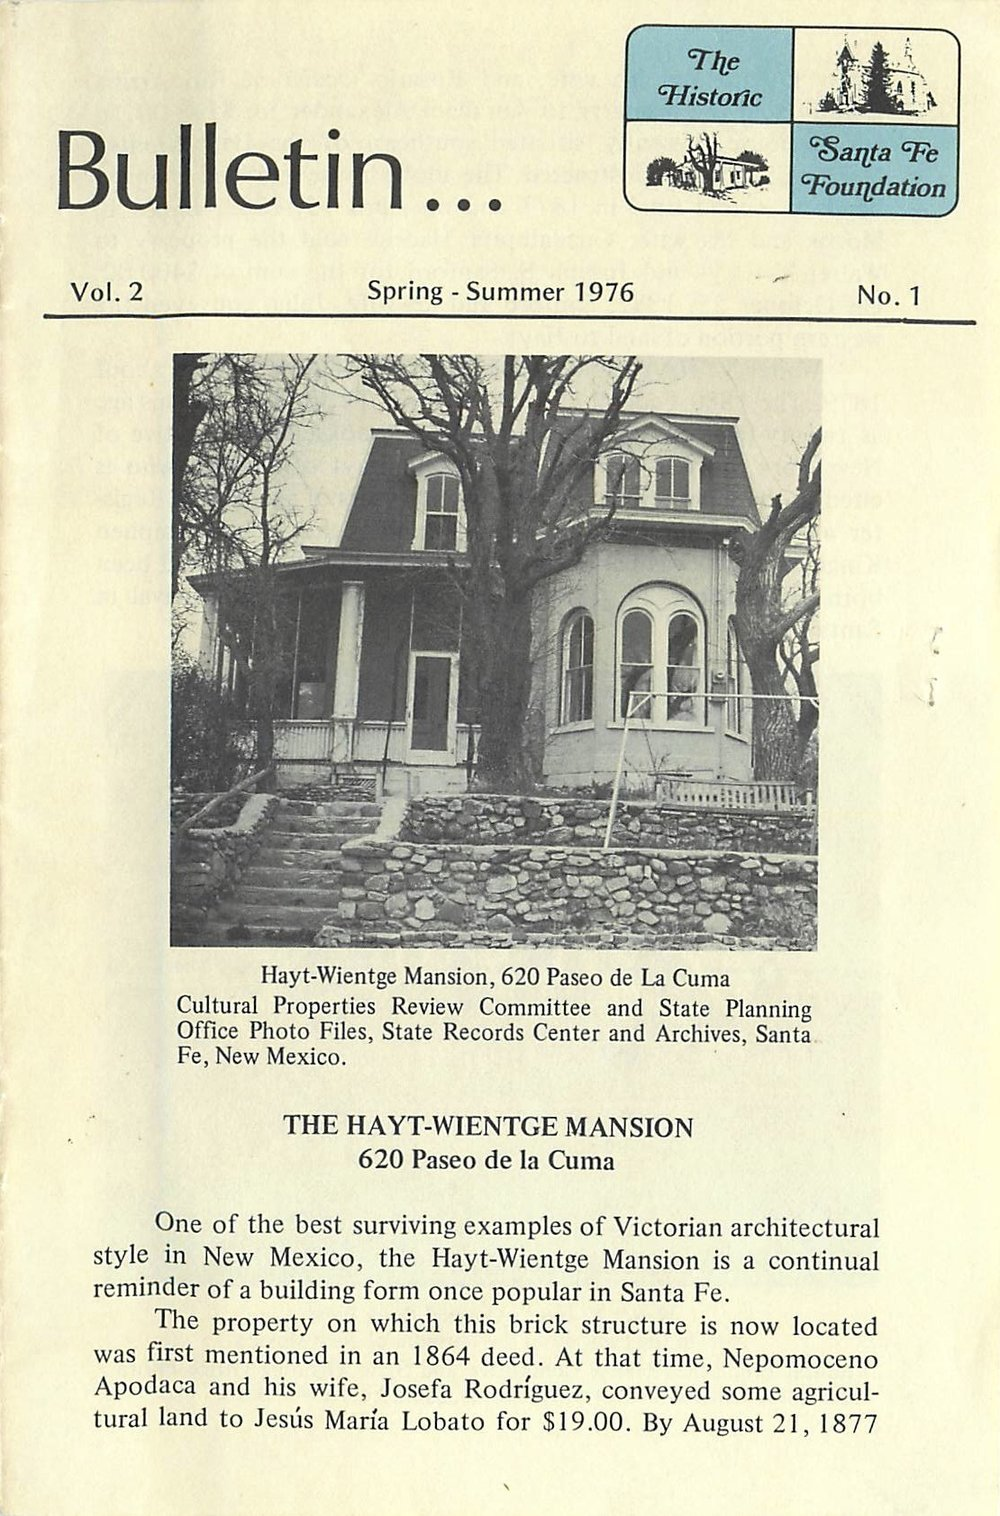 1976 HSFF Bulletin Vol.2 No.1 Cover